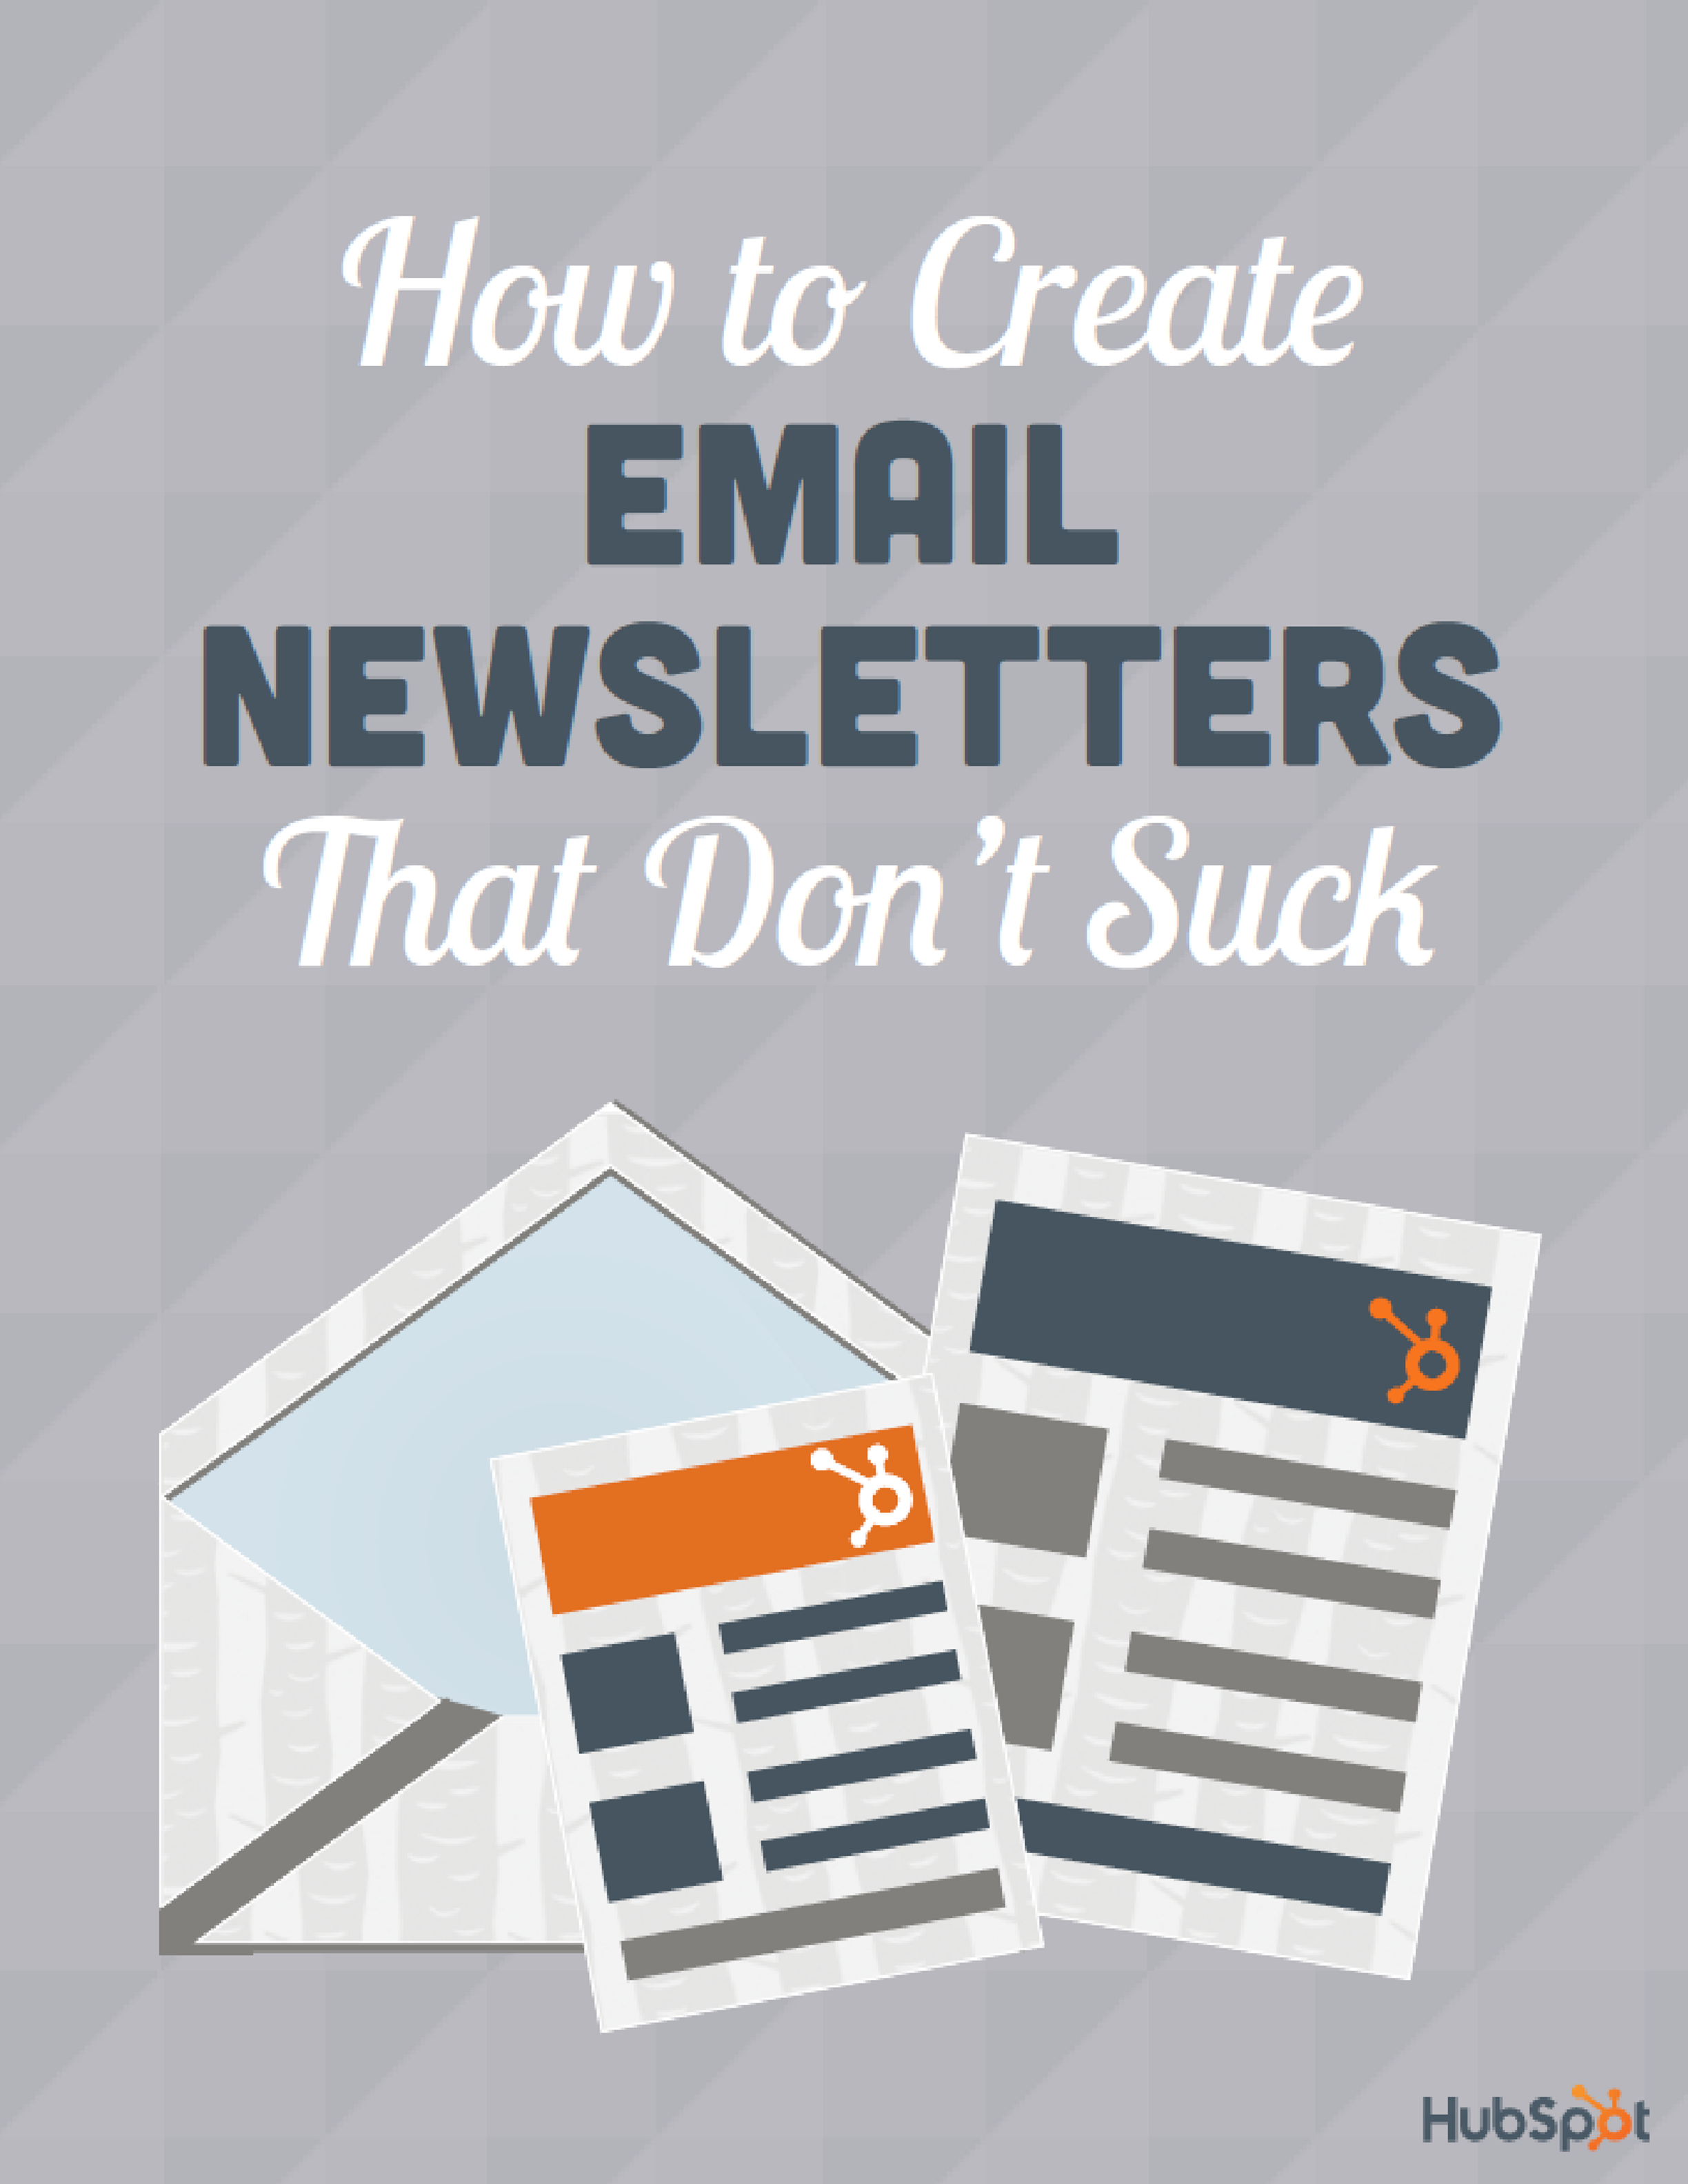 How to Write Newsletters for Startups and Entrepreneurs